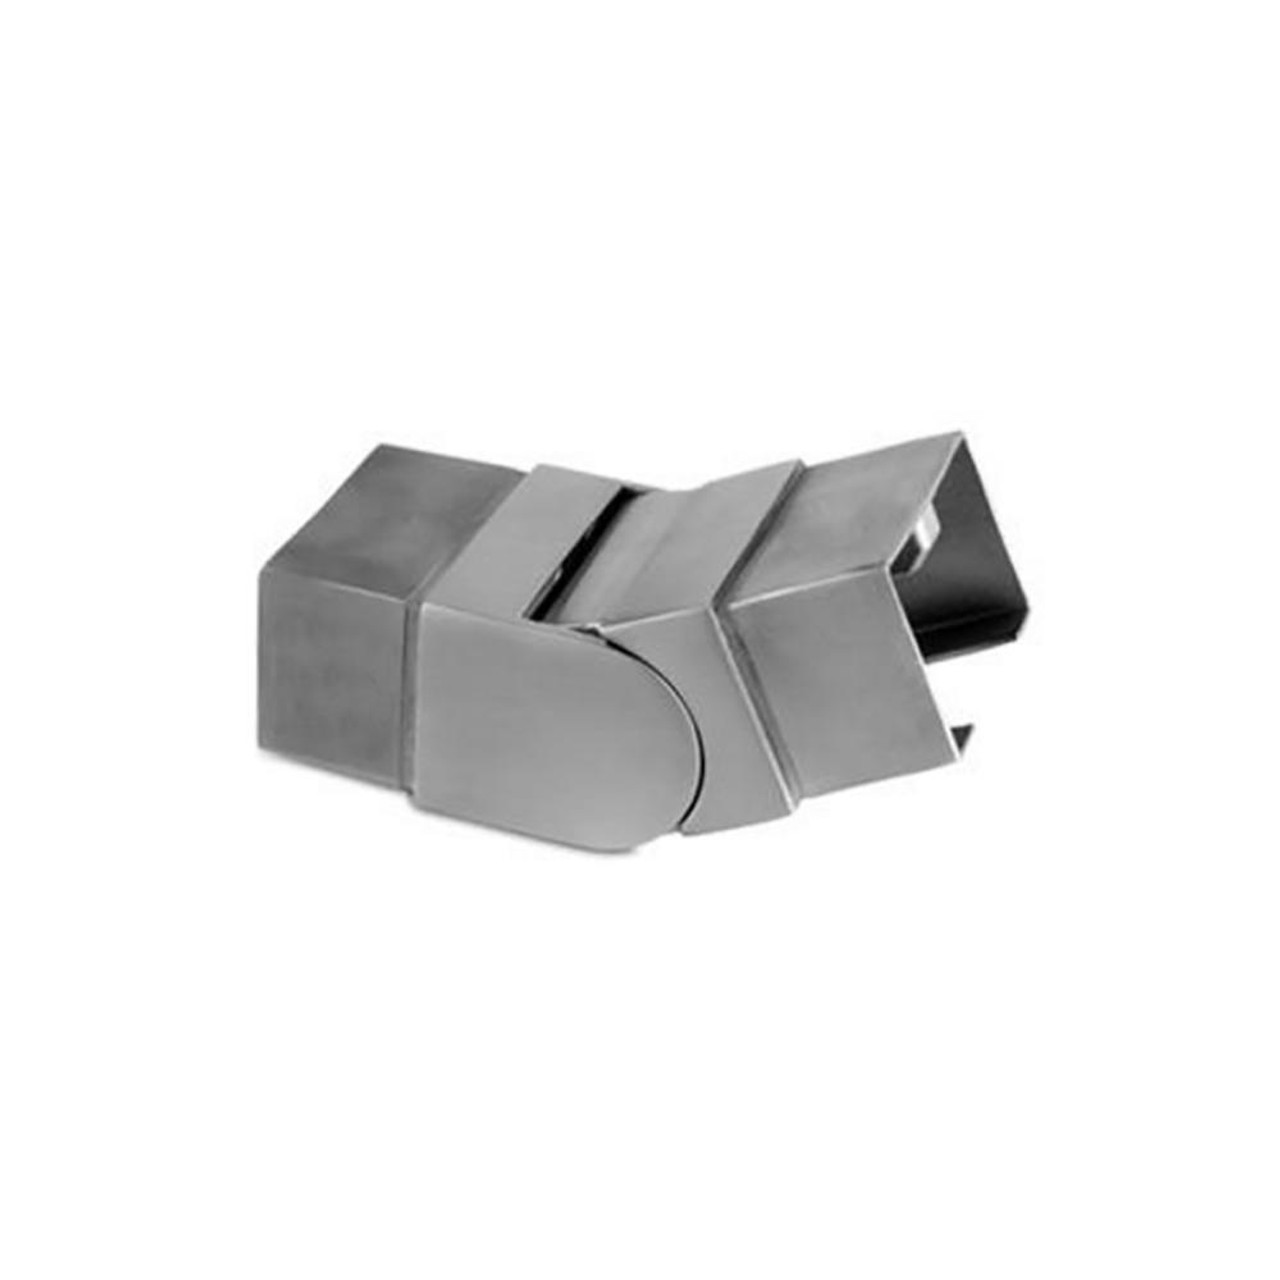 Square Glass Cap Rail Adjustable Angle Vertical Fitting (AX00.032.310.A.SP)